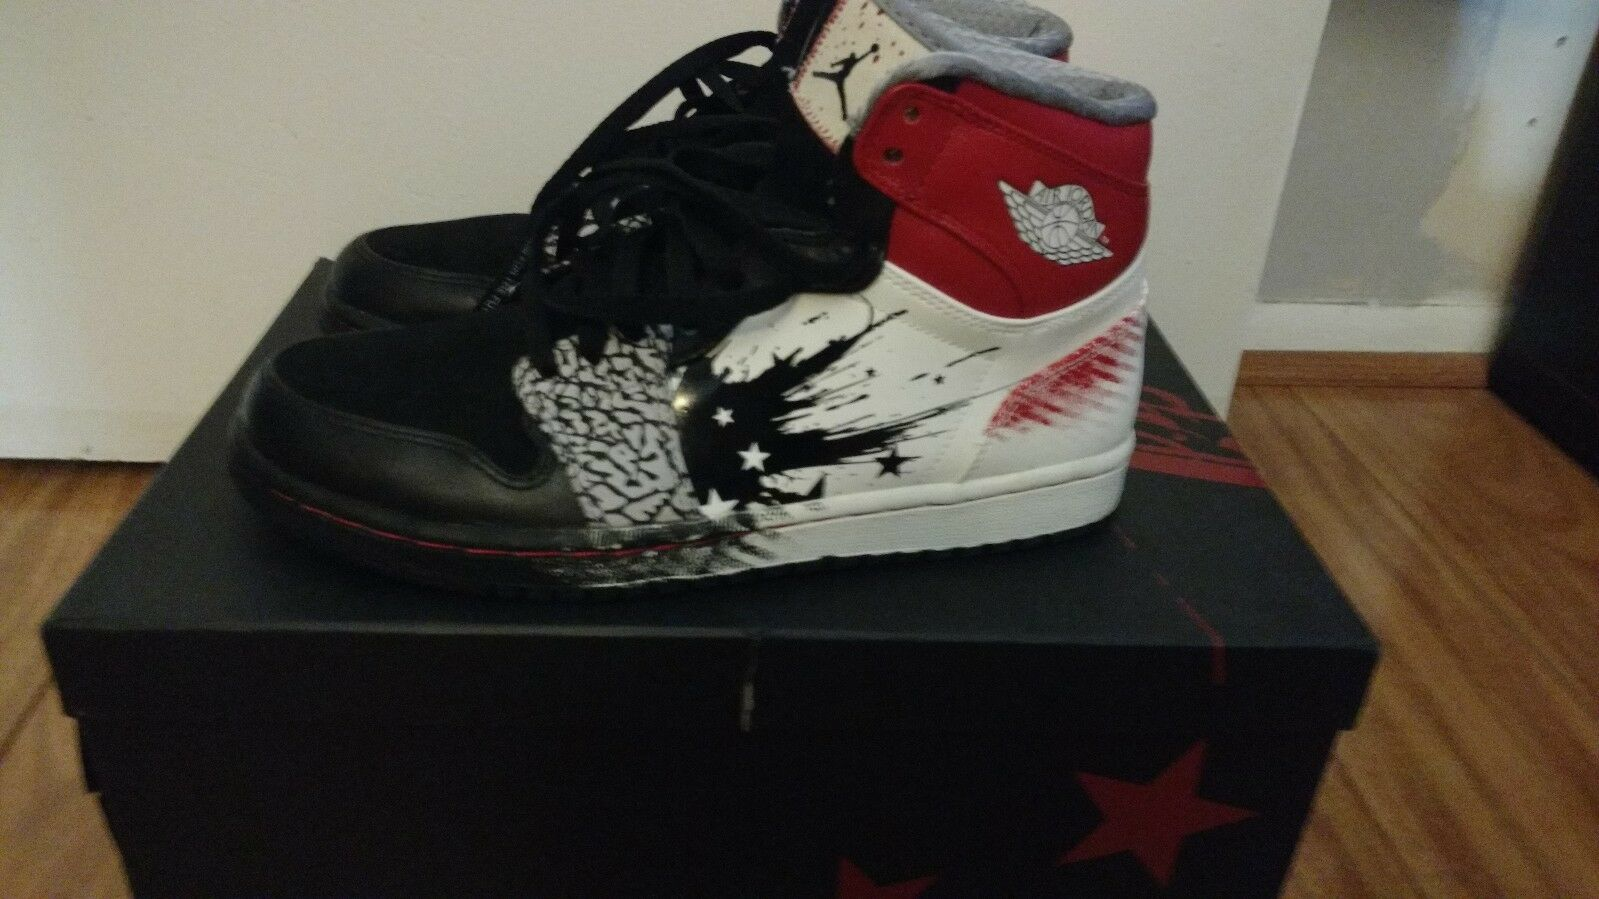 AIR JORDAN 1 HIGH DW  DAVE WHITE (WINGS OF THE FUTURE)  Size 8 black red white